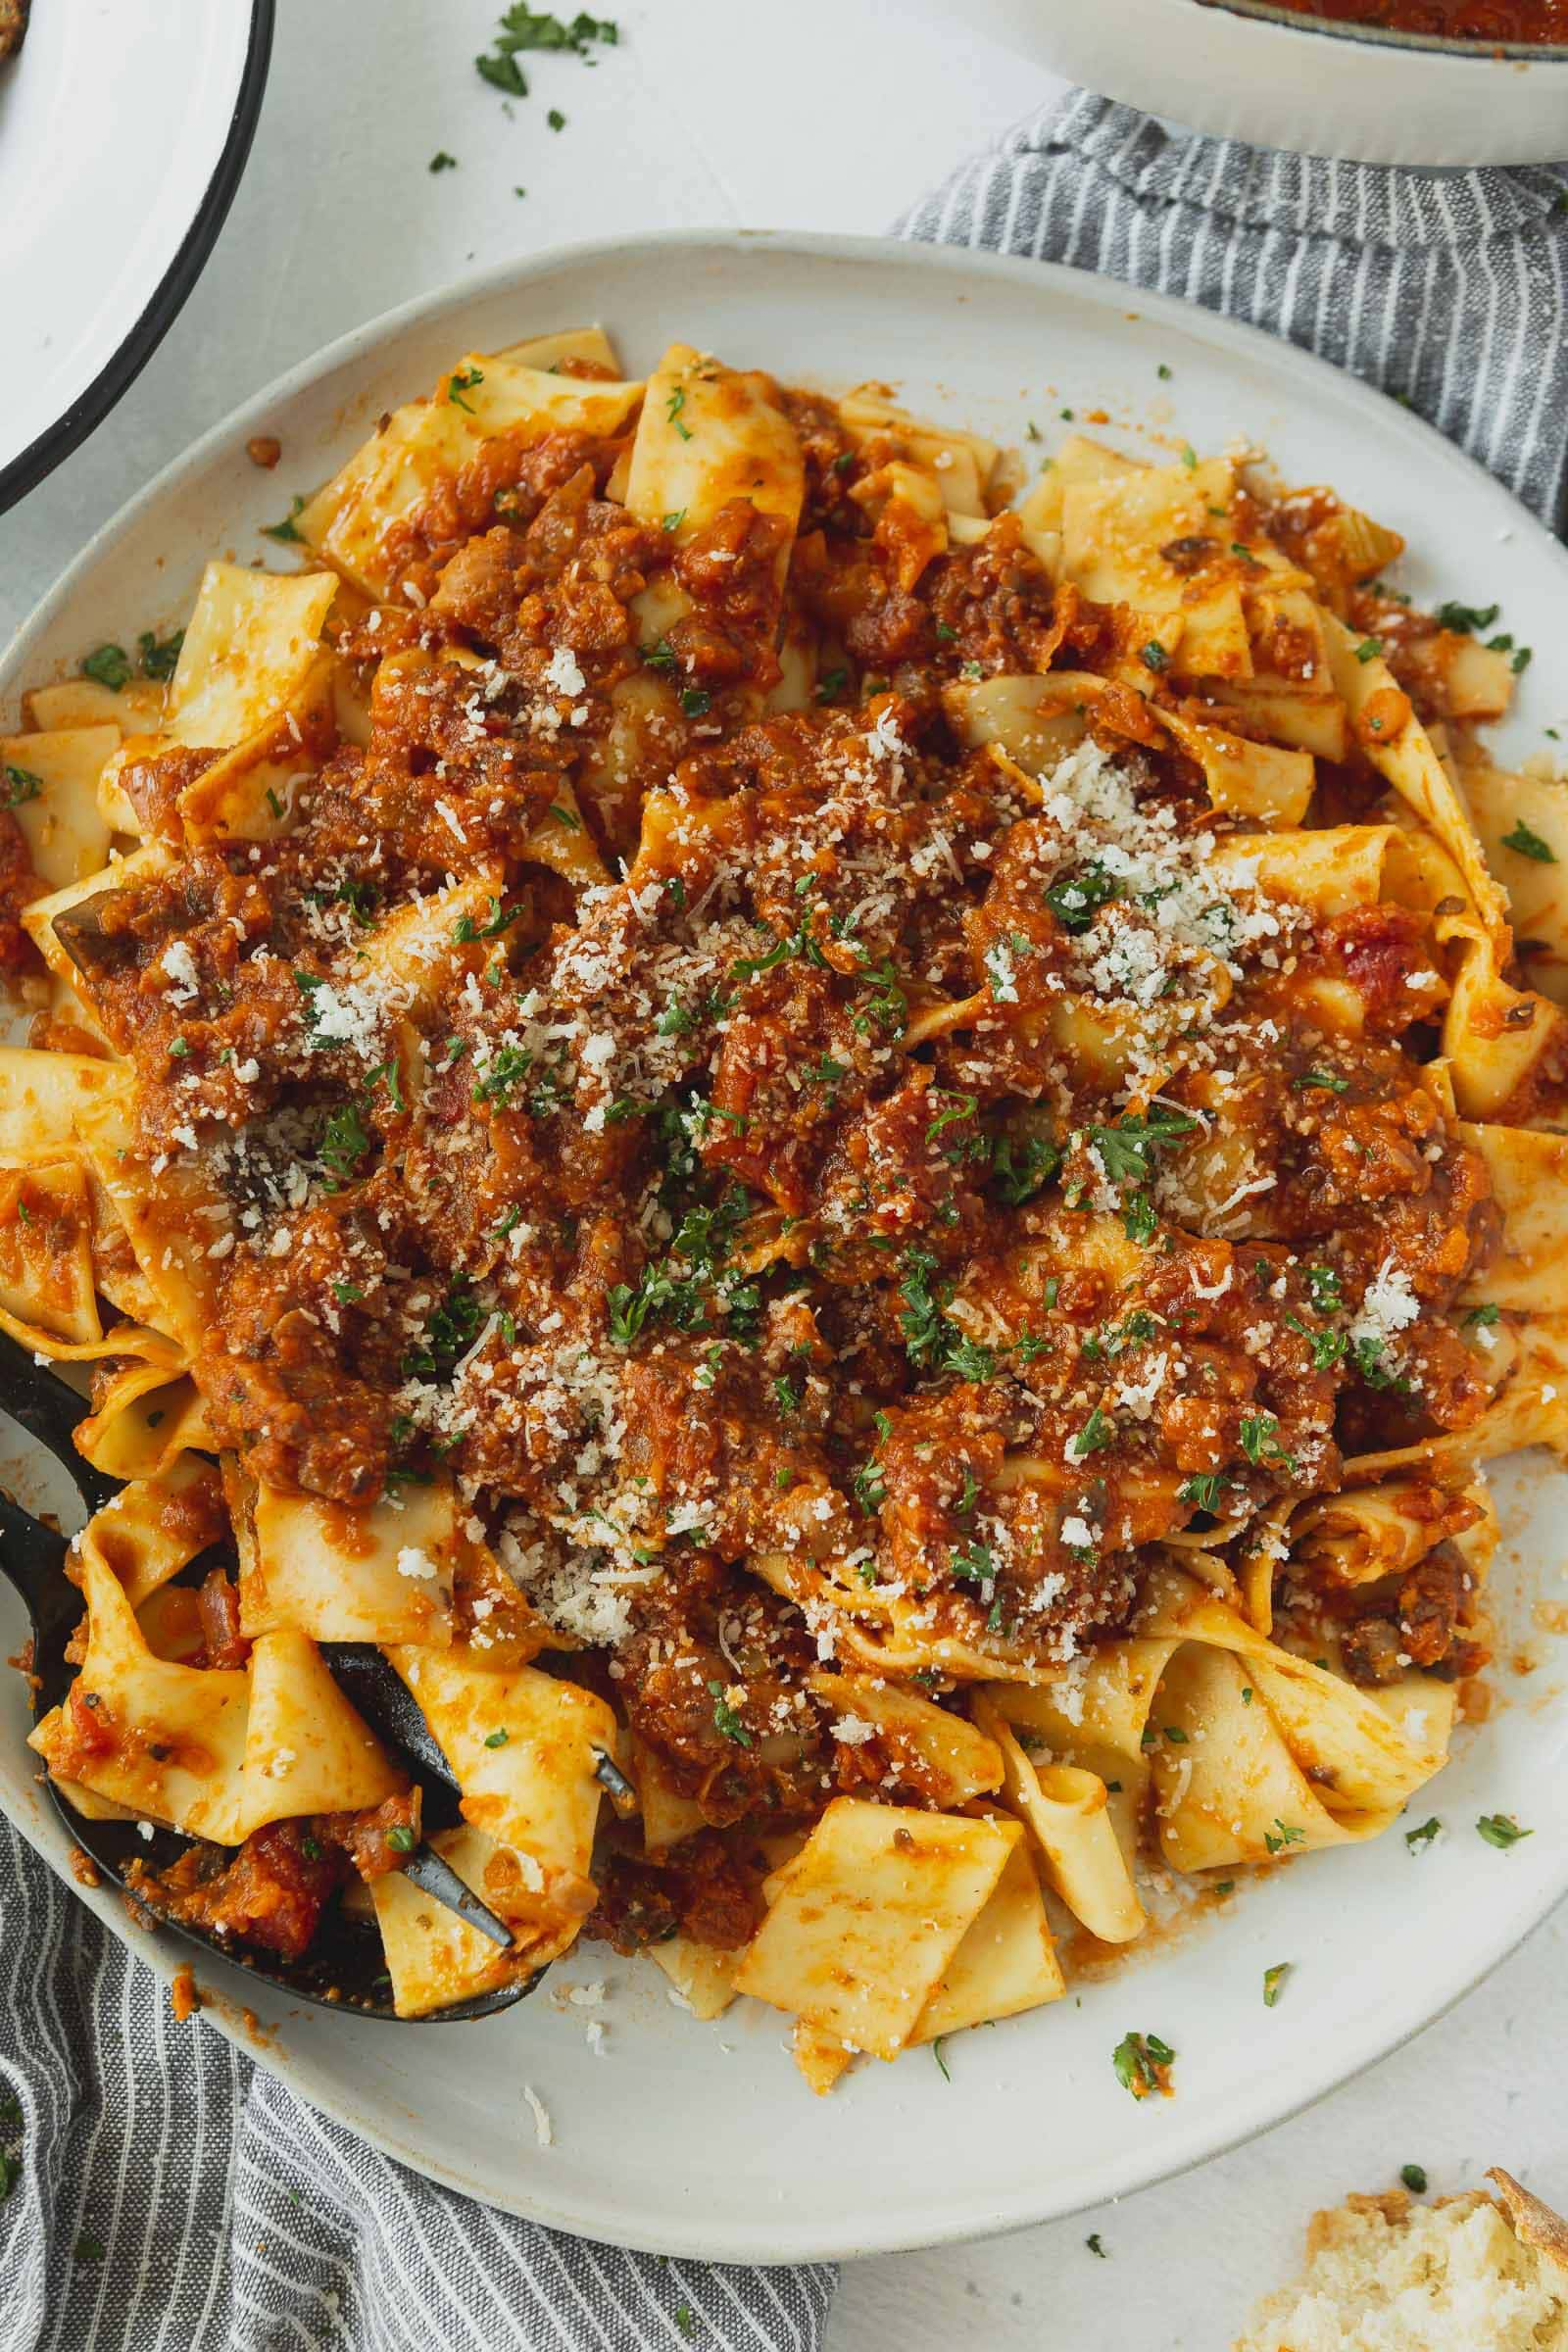 Pasta with bolognese sauce. A little grated cheese and chopped cilantro is on top.